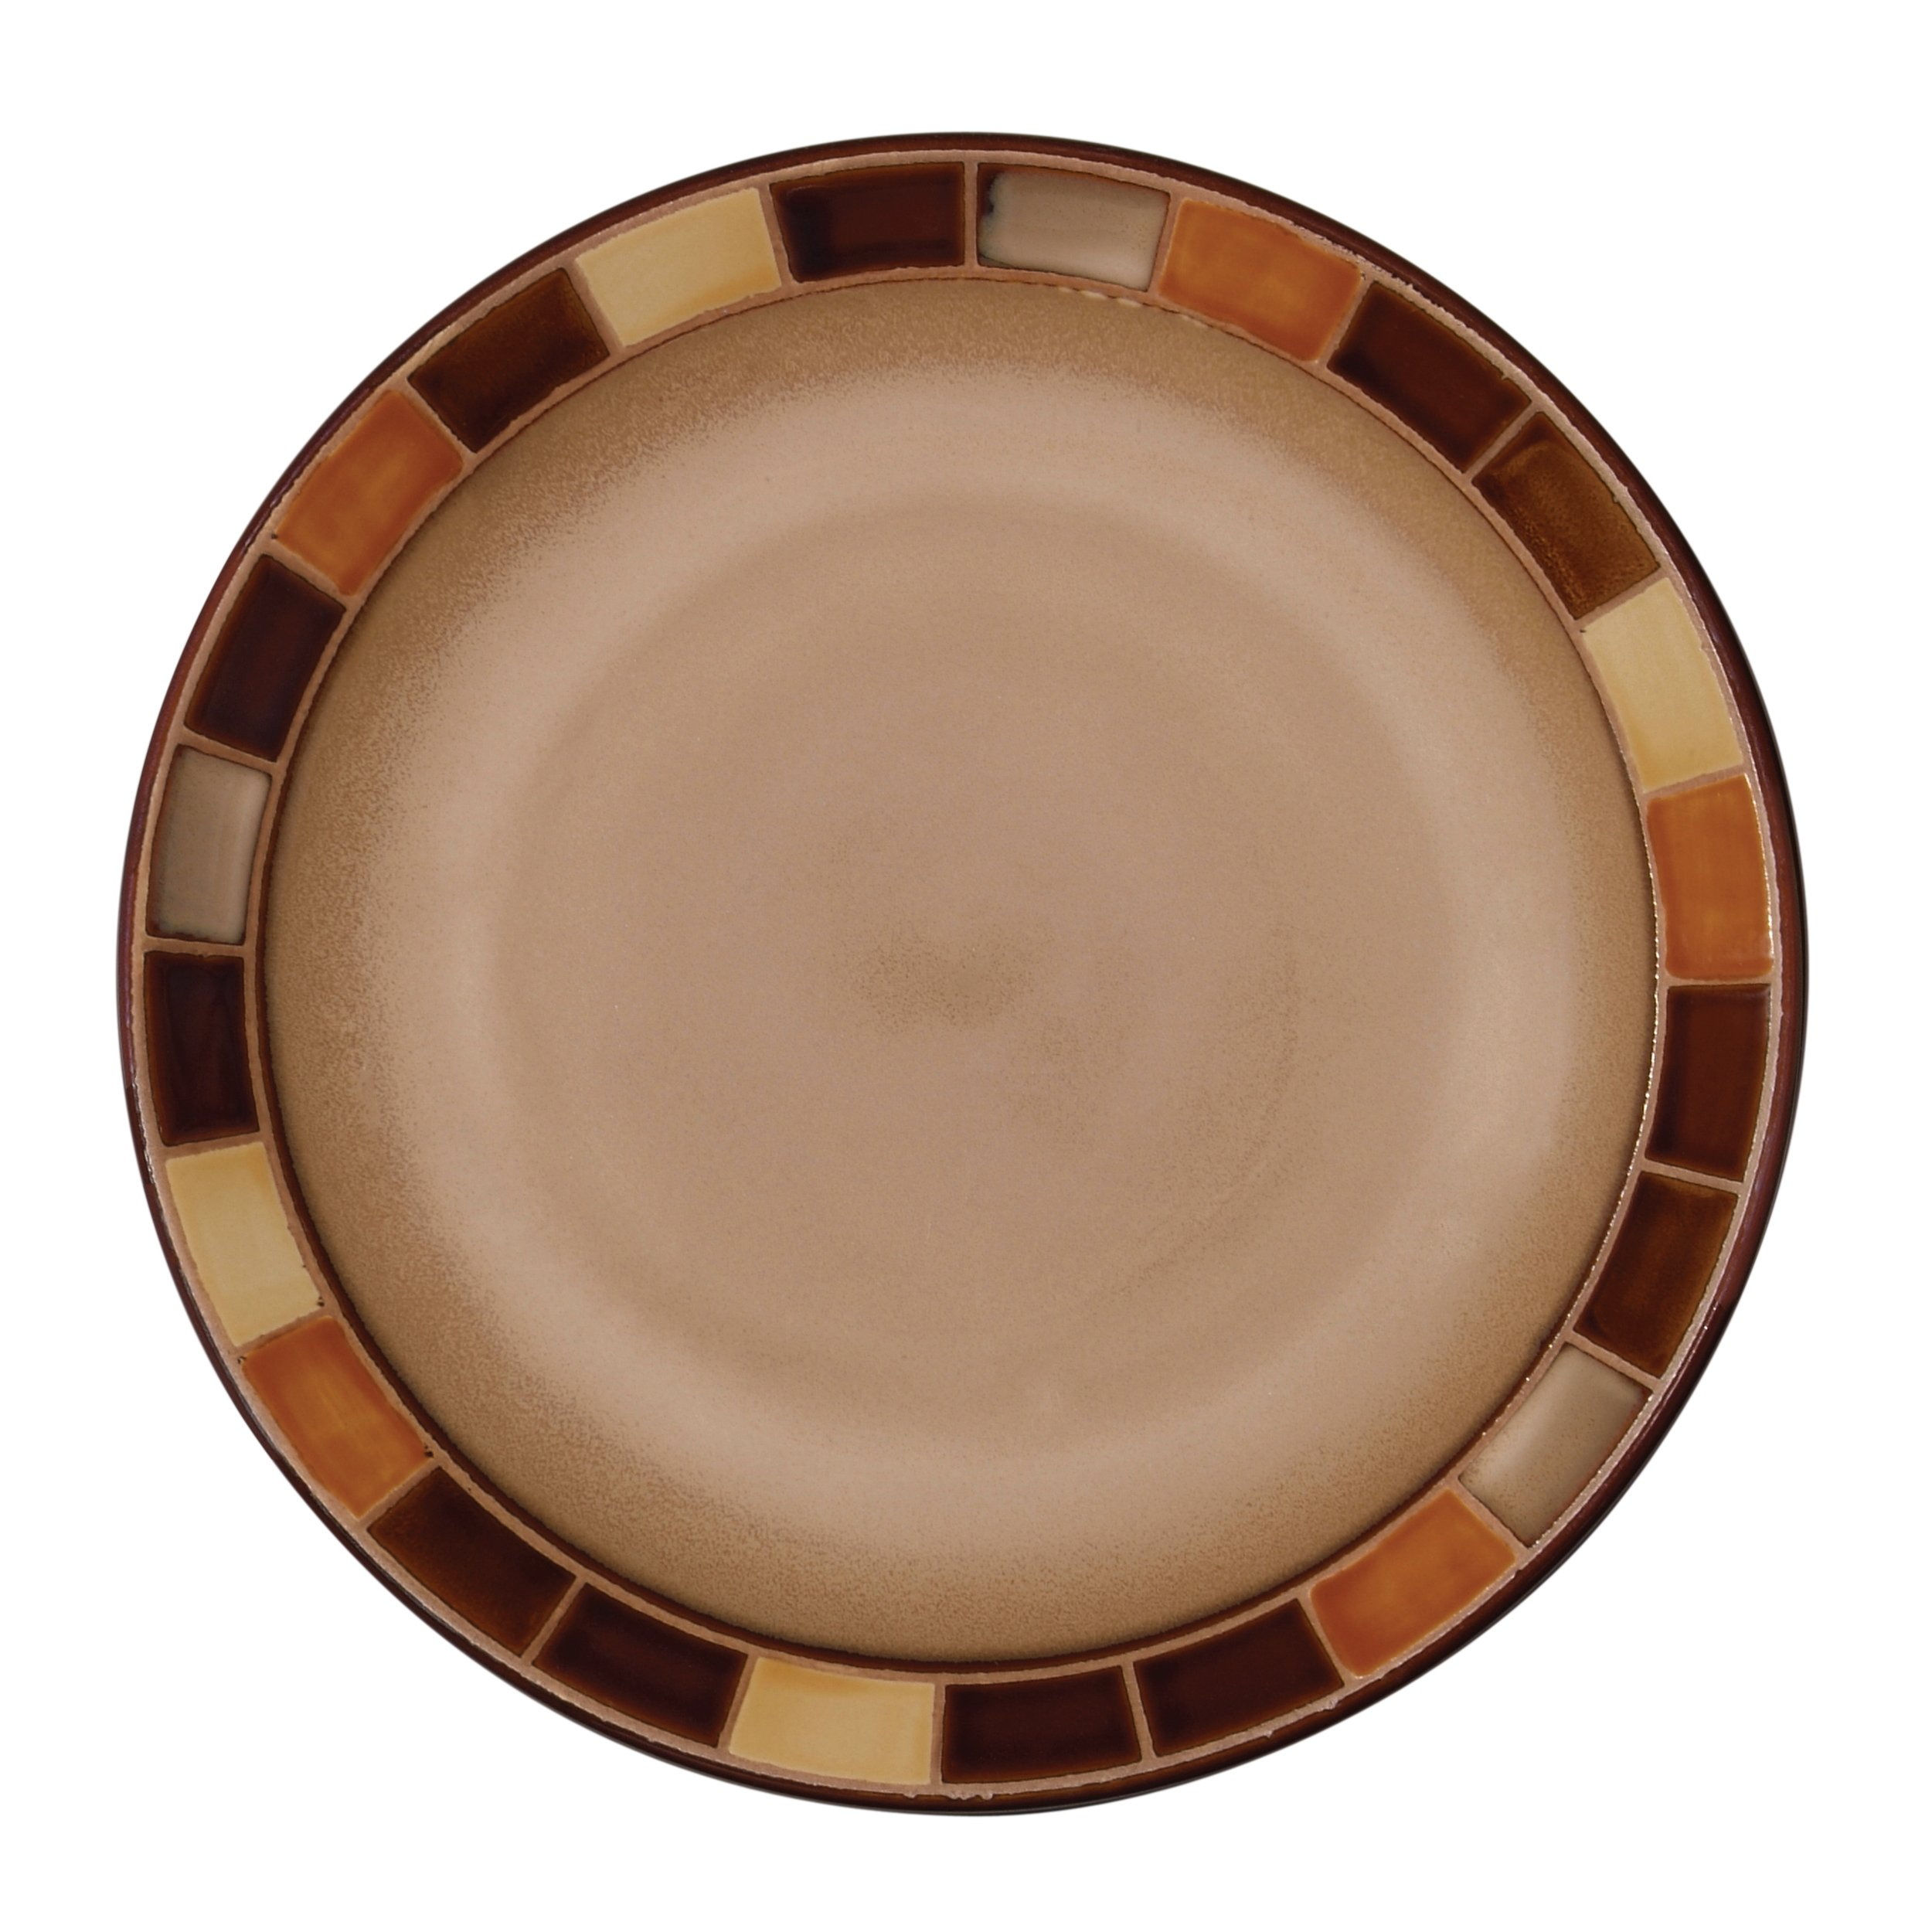 Gibson 70736.16RM Casa Estebana 16-piece Dinnerware Set Service for 4, Beige and Brown by Gibson (Image #5)